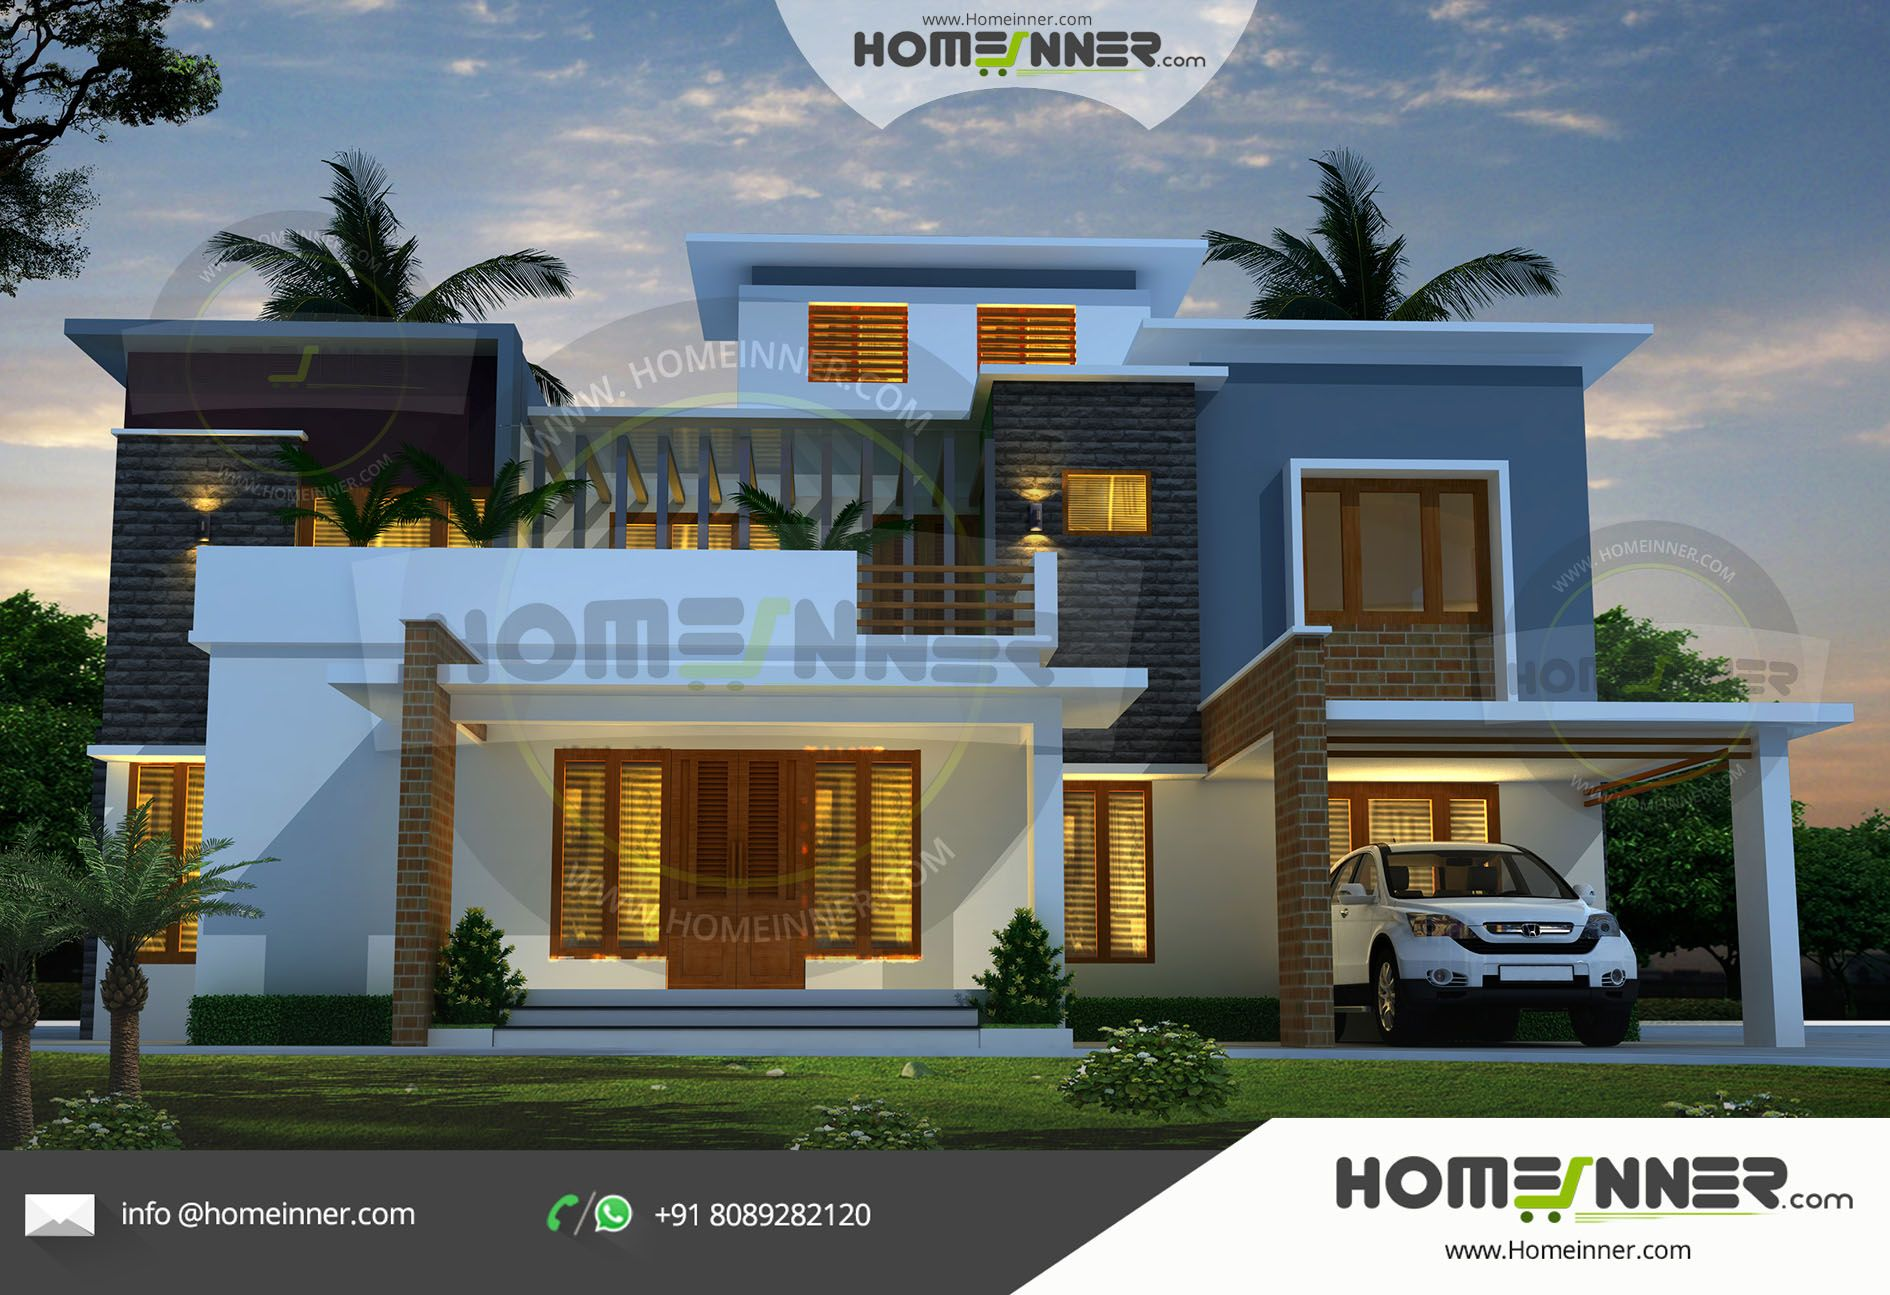 outstanding nice house designs pictures. Outstanding Duplex Villa Project Kerala 4 Beds 5 Baths 2550 sqft Plan  Beautiful House PlansModern Pin by Homeinner Home Design plans Interior on Free